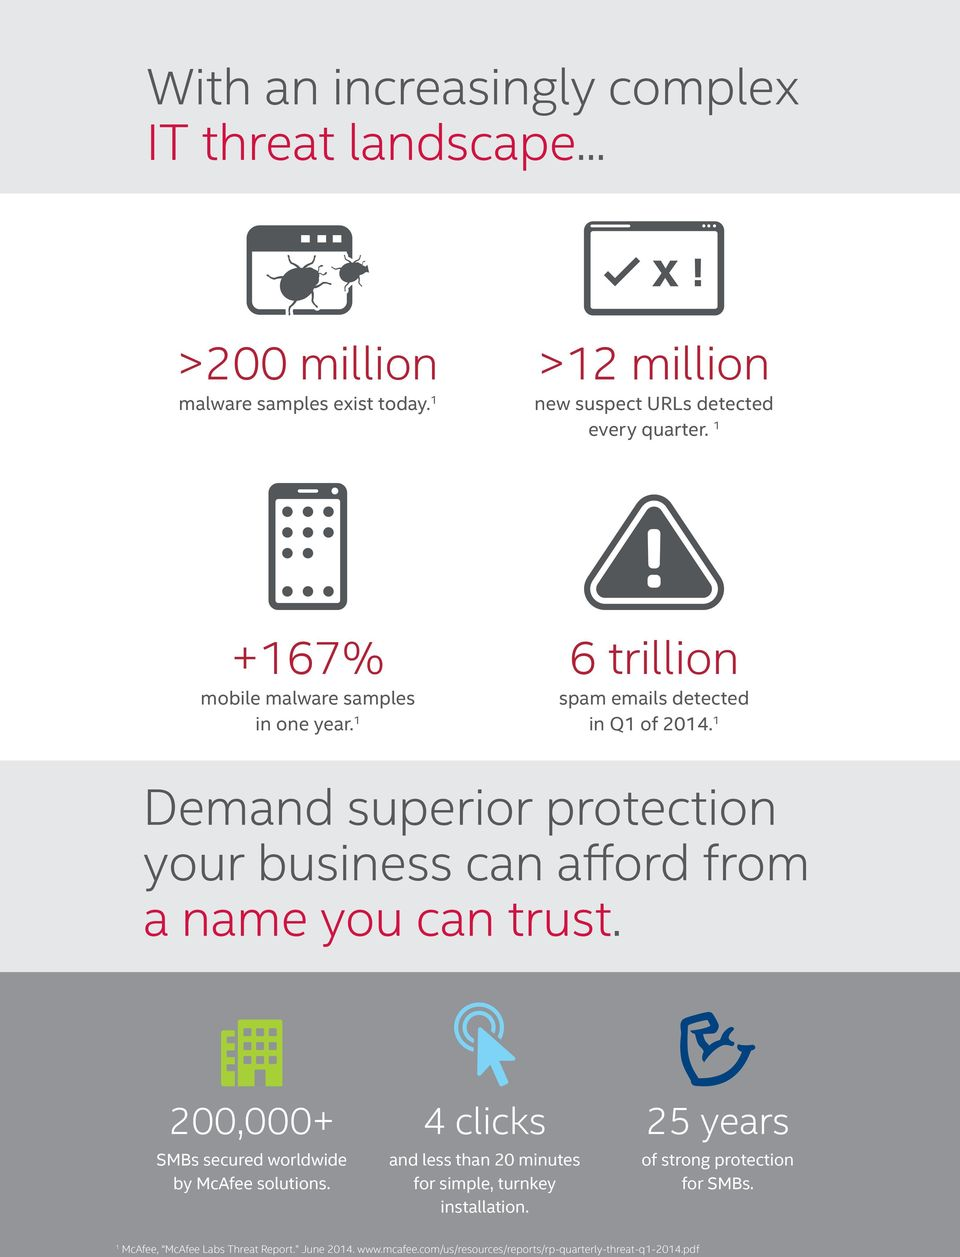 1 Demand superior protection your business can afford from a name you can trust. 200,000+ SMBs secured worldwide by McAfee solutions.